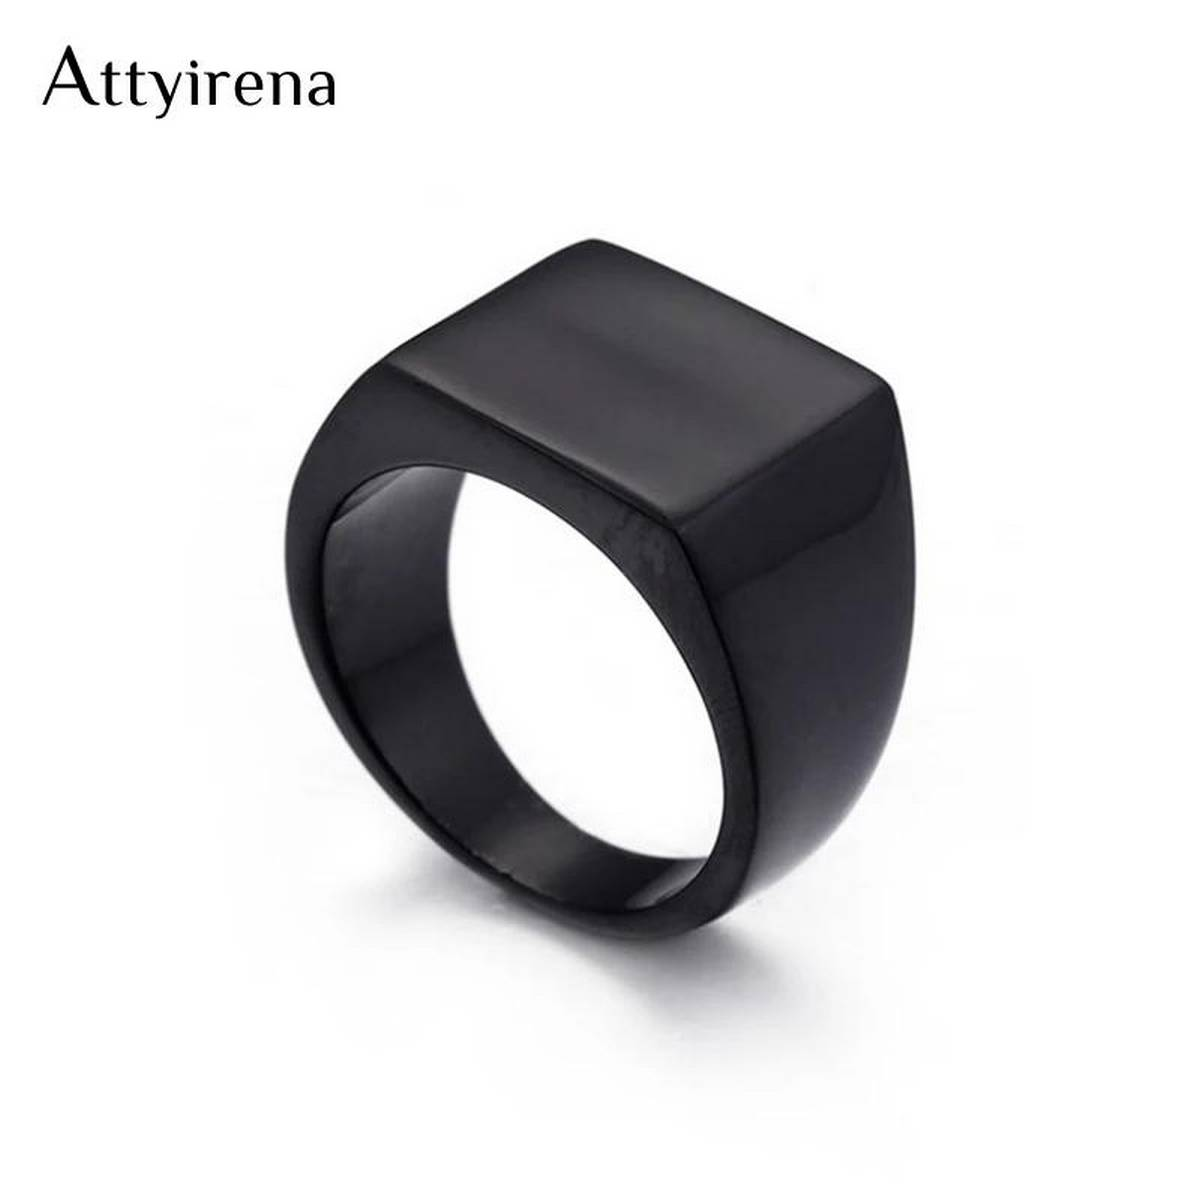 Hot Sale Fashion Men Simple Band Rings Square  Black Stainless Steel Personality Square Circle Finger Rings Jewelry